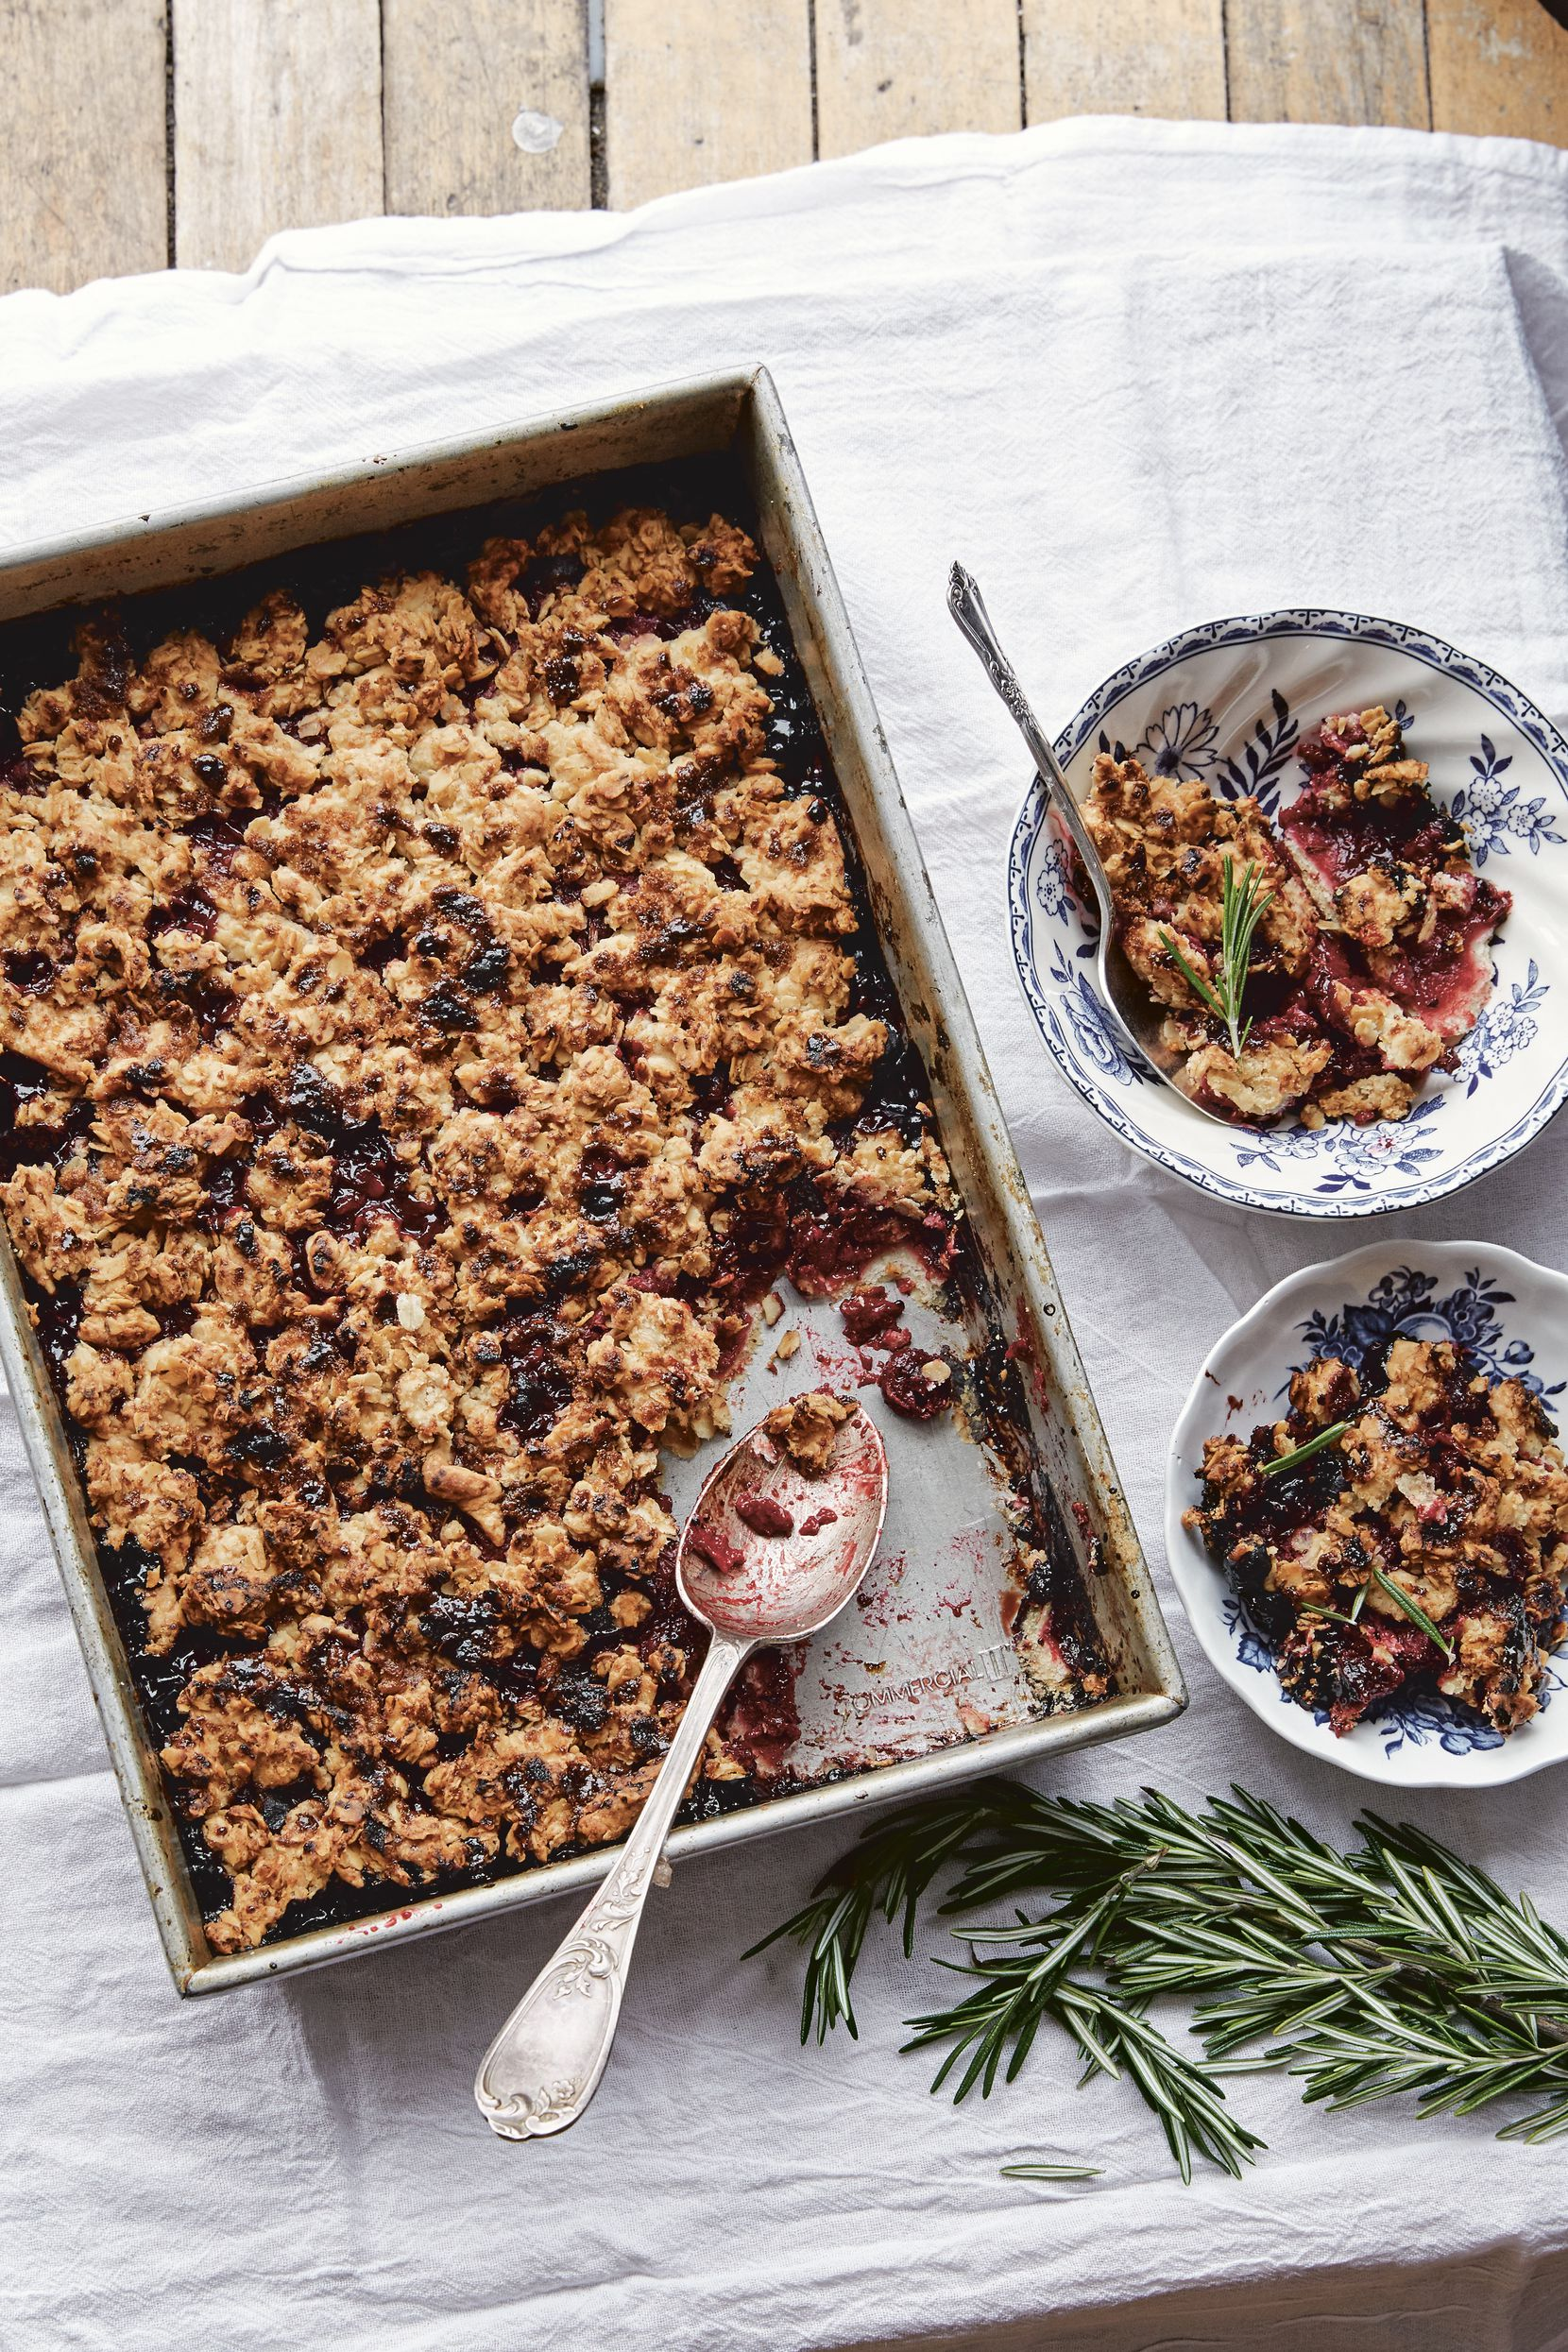 Cherry Rosemary Crumble from Maman The Cookbook by Elise Marshall